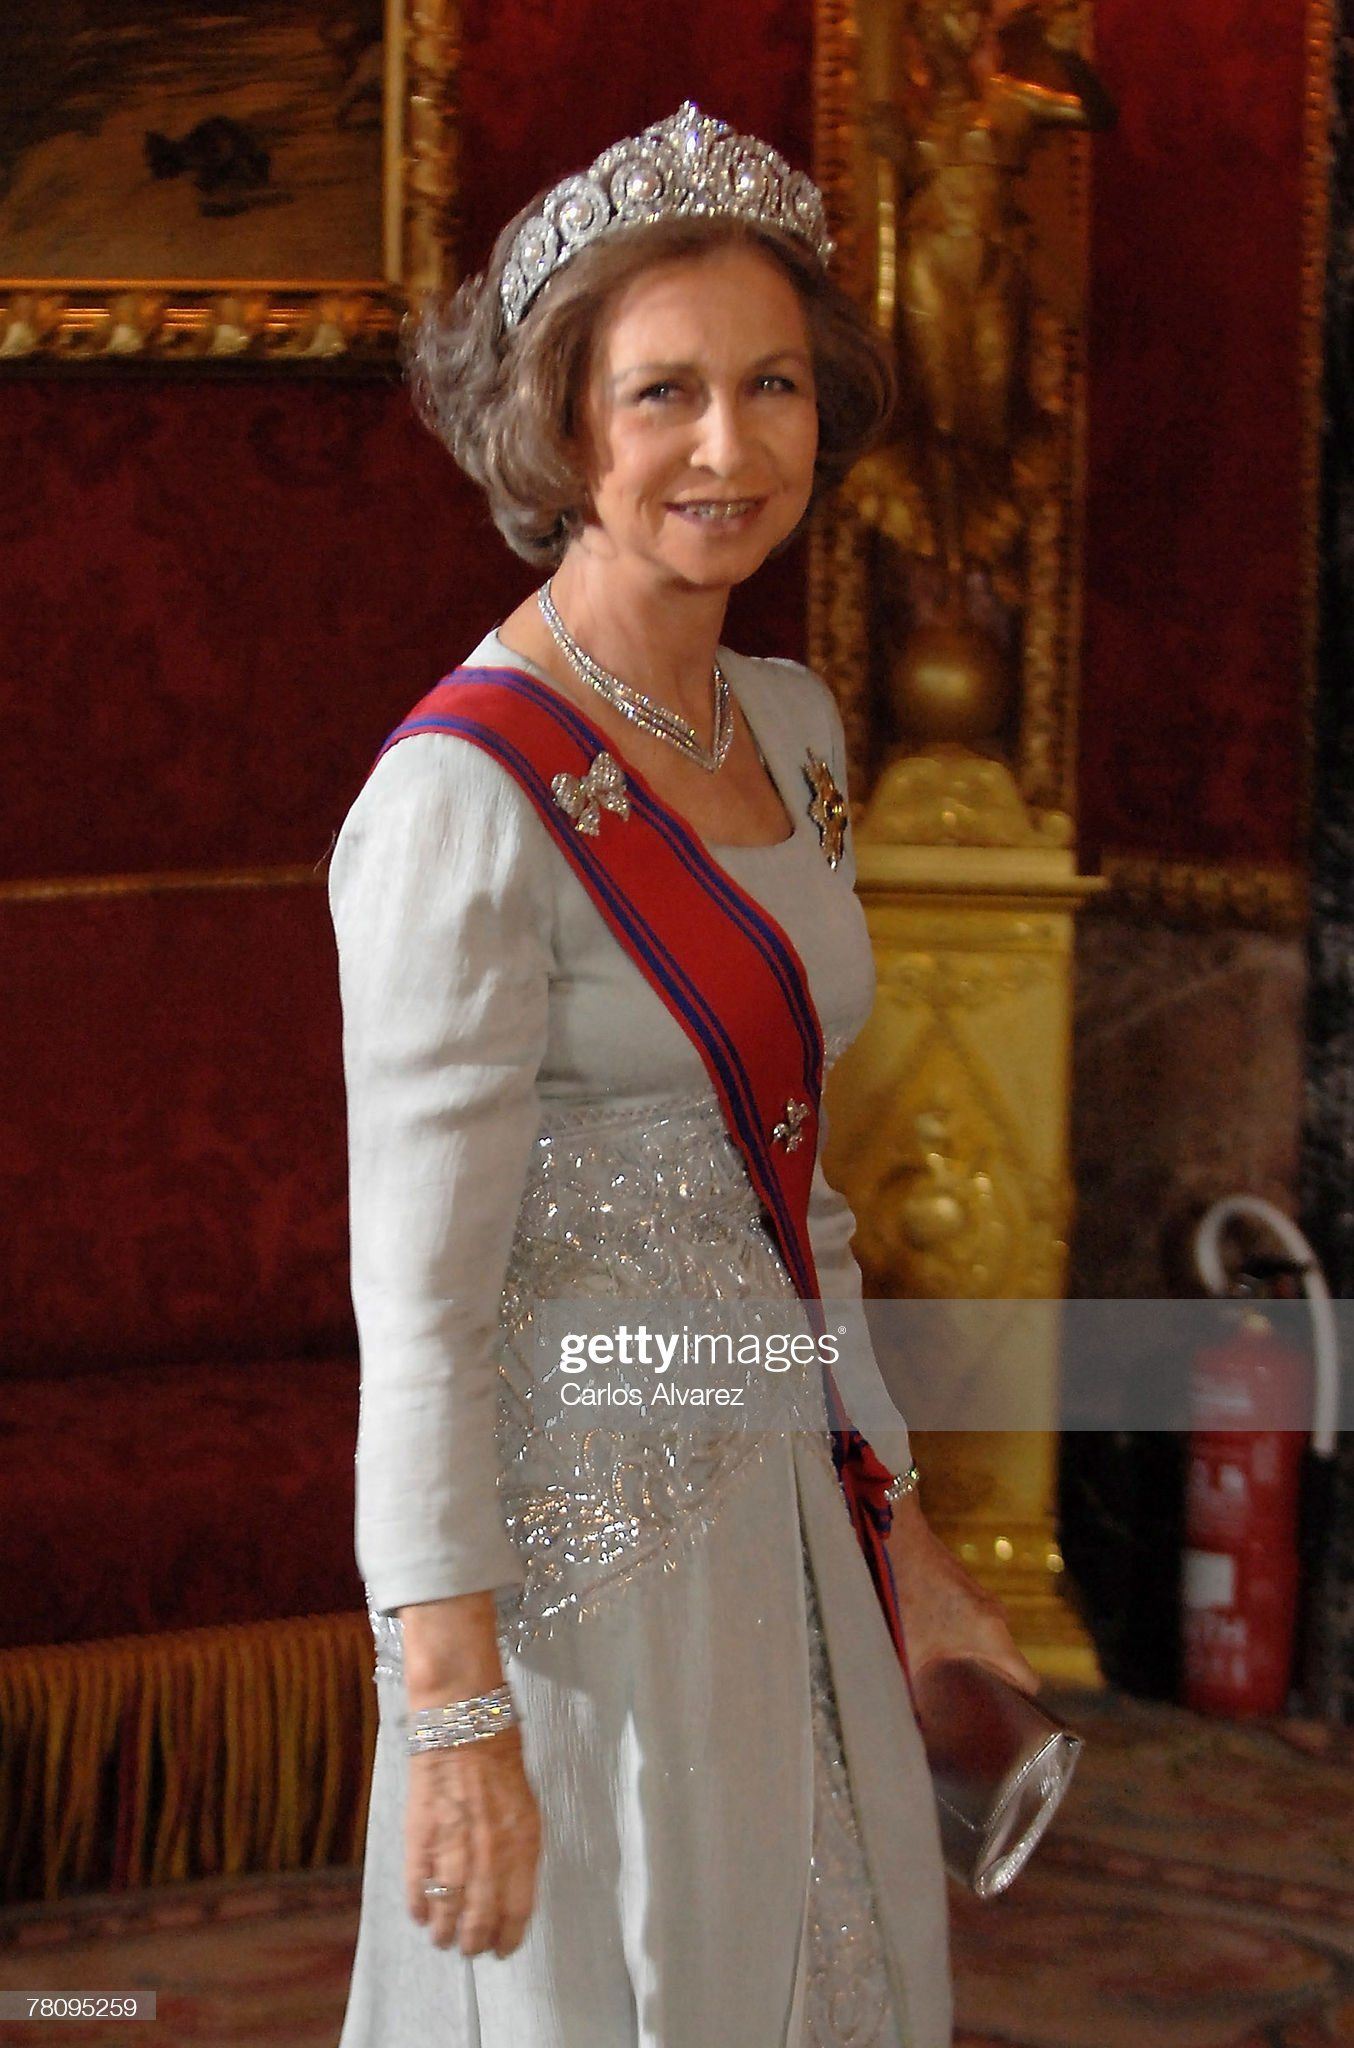 Spanish Royals Receive Romanian President For A Gala Dinner : News Photo